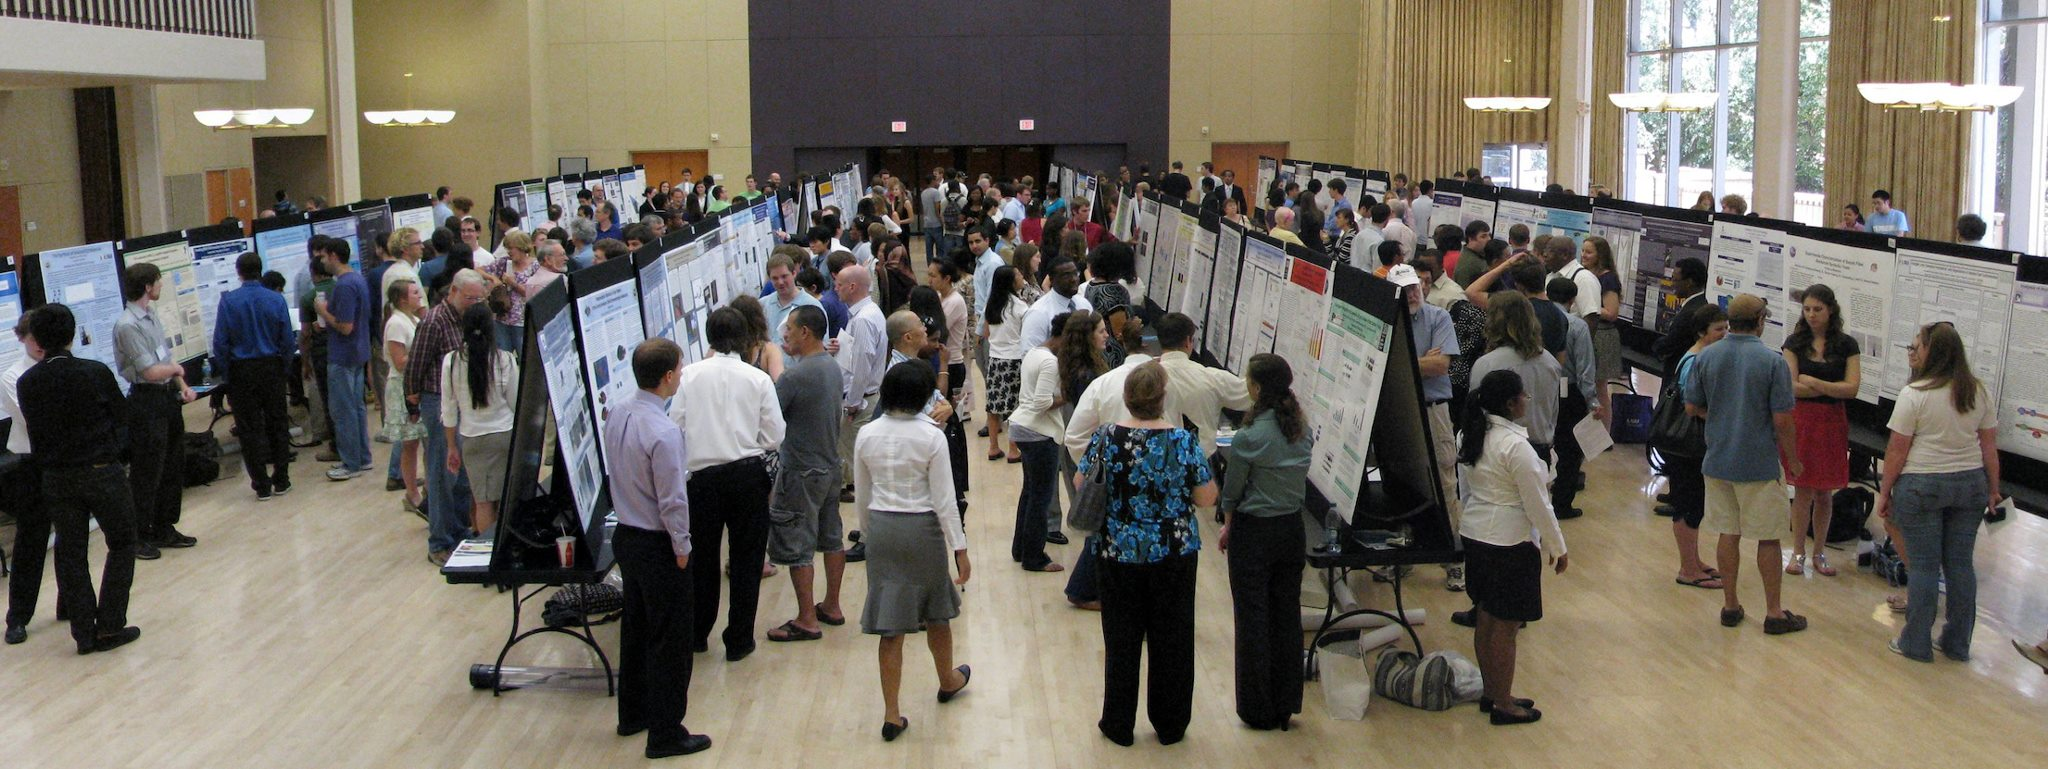 LSU Summer Undergraduate Research Forum